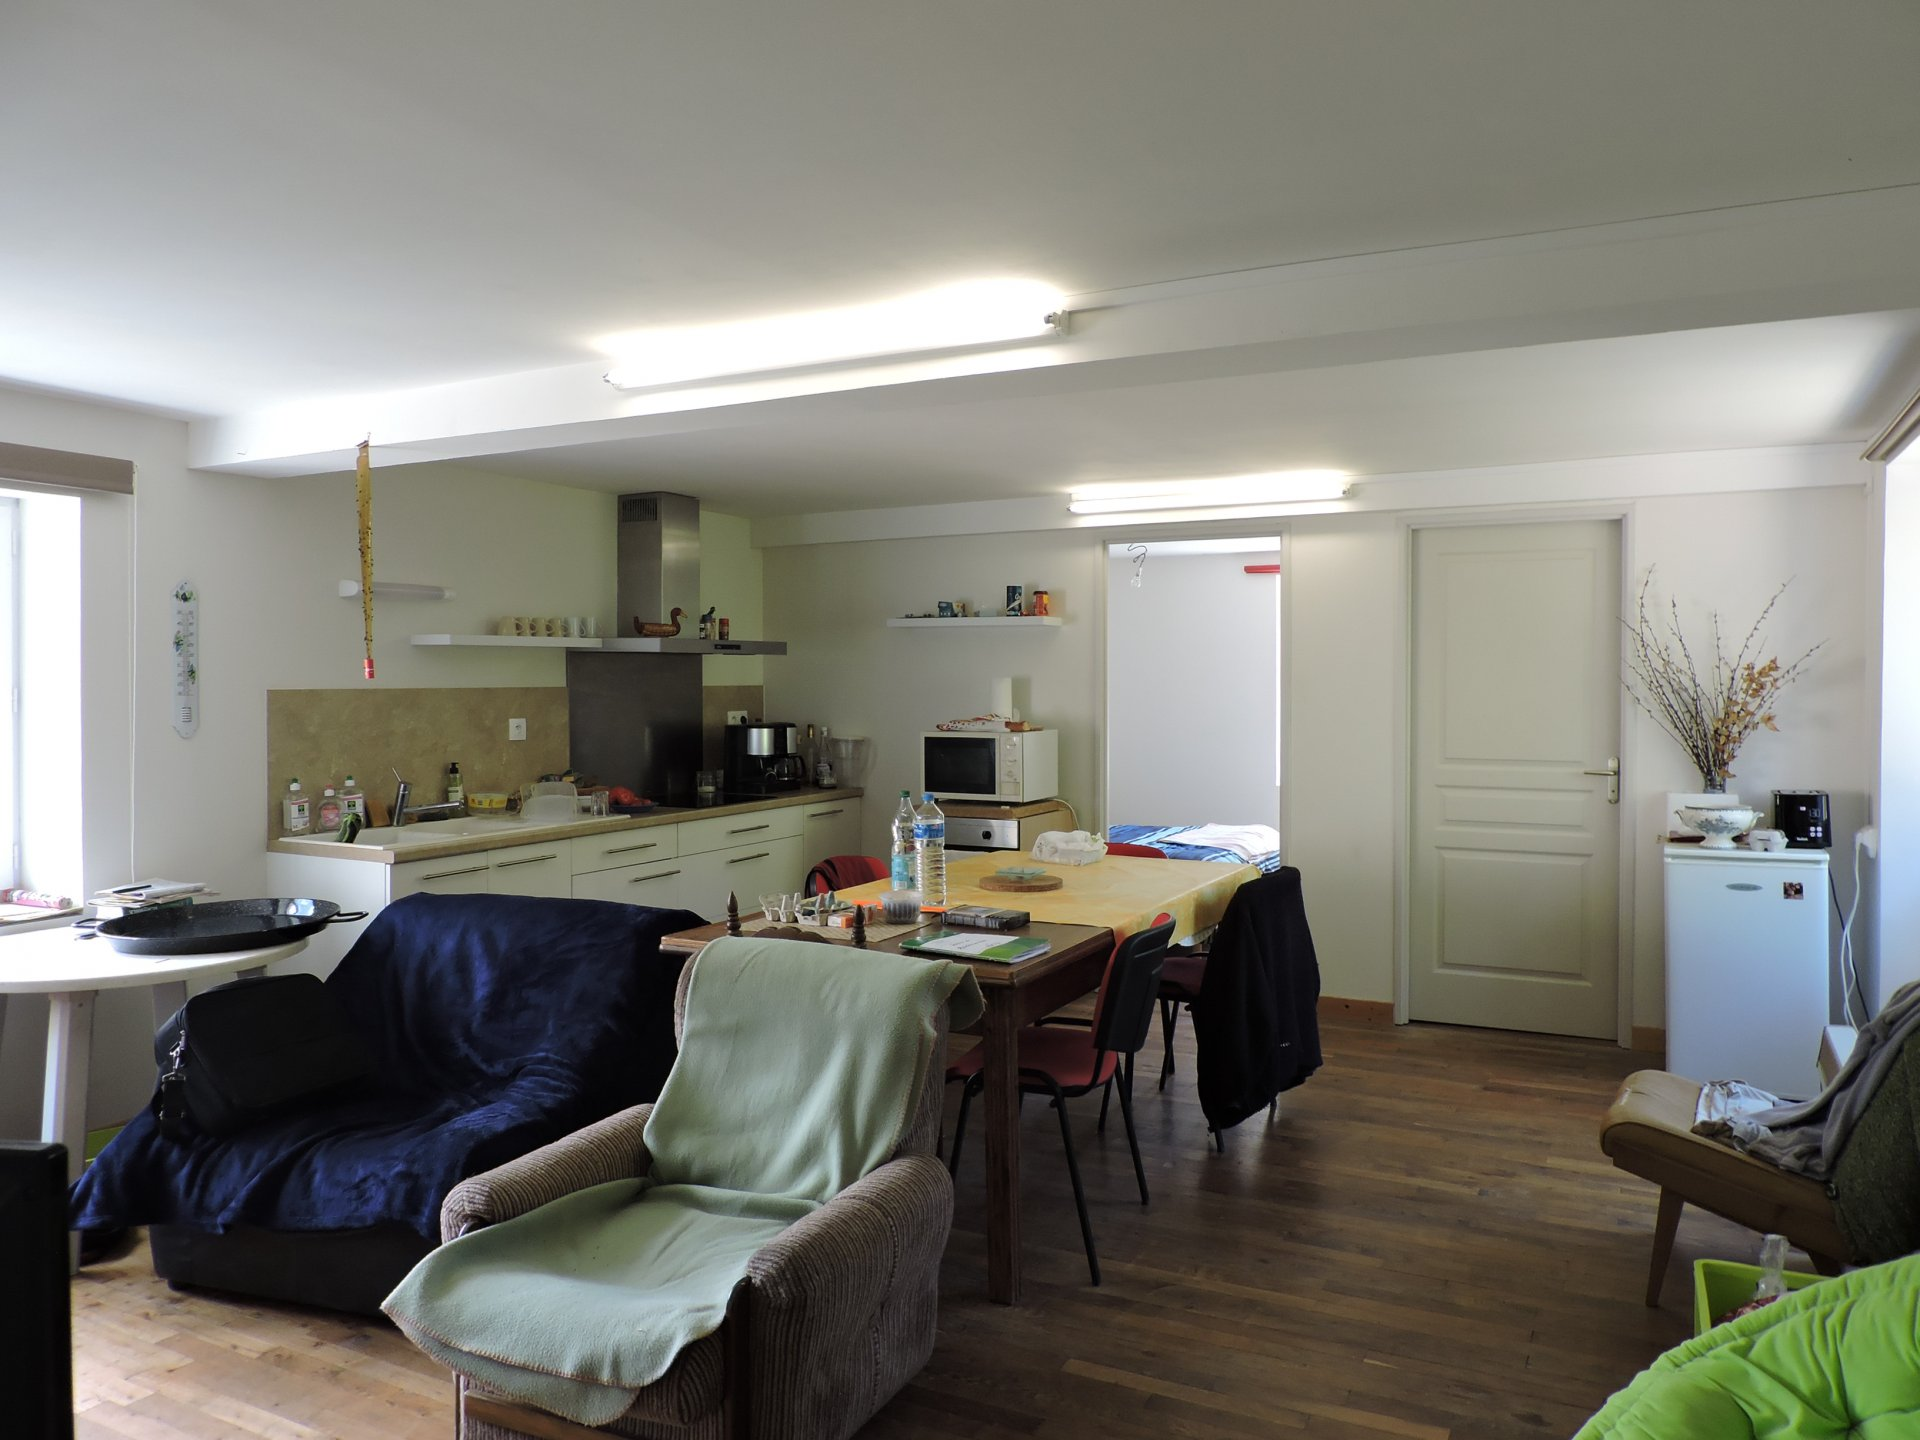 Right wing: Living room of the 1st floor flat